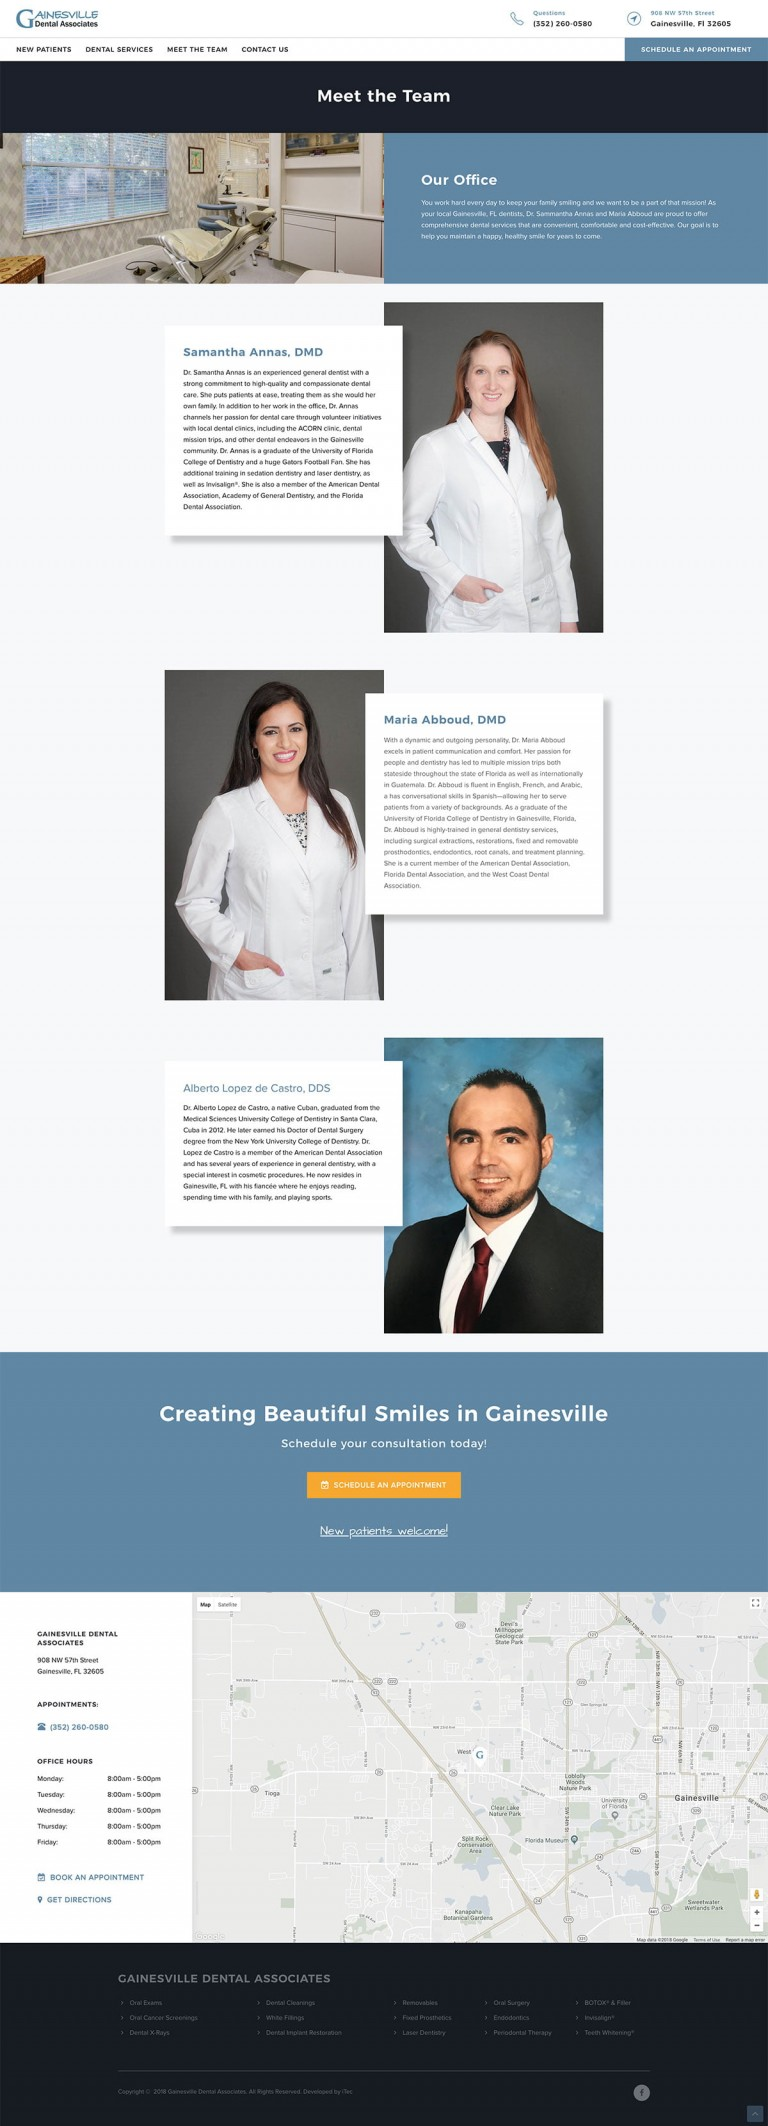 web-design-portfolio-gainesville2